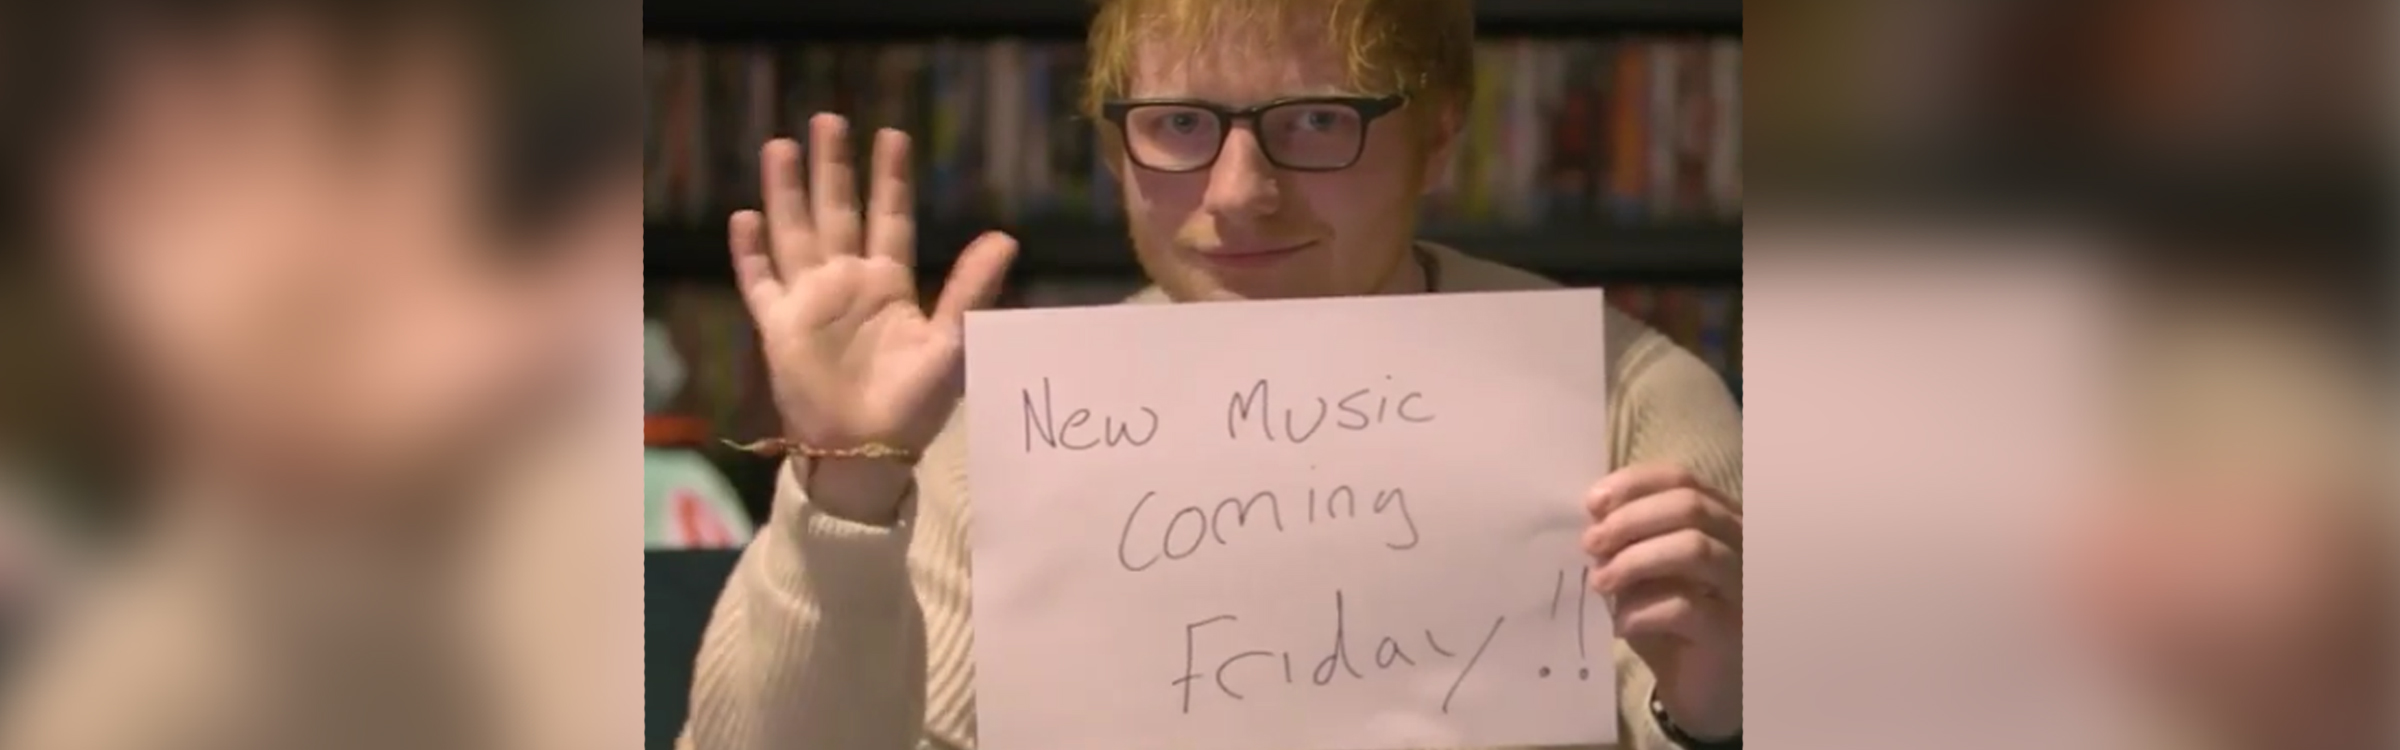 Ed newmusic header